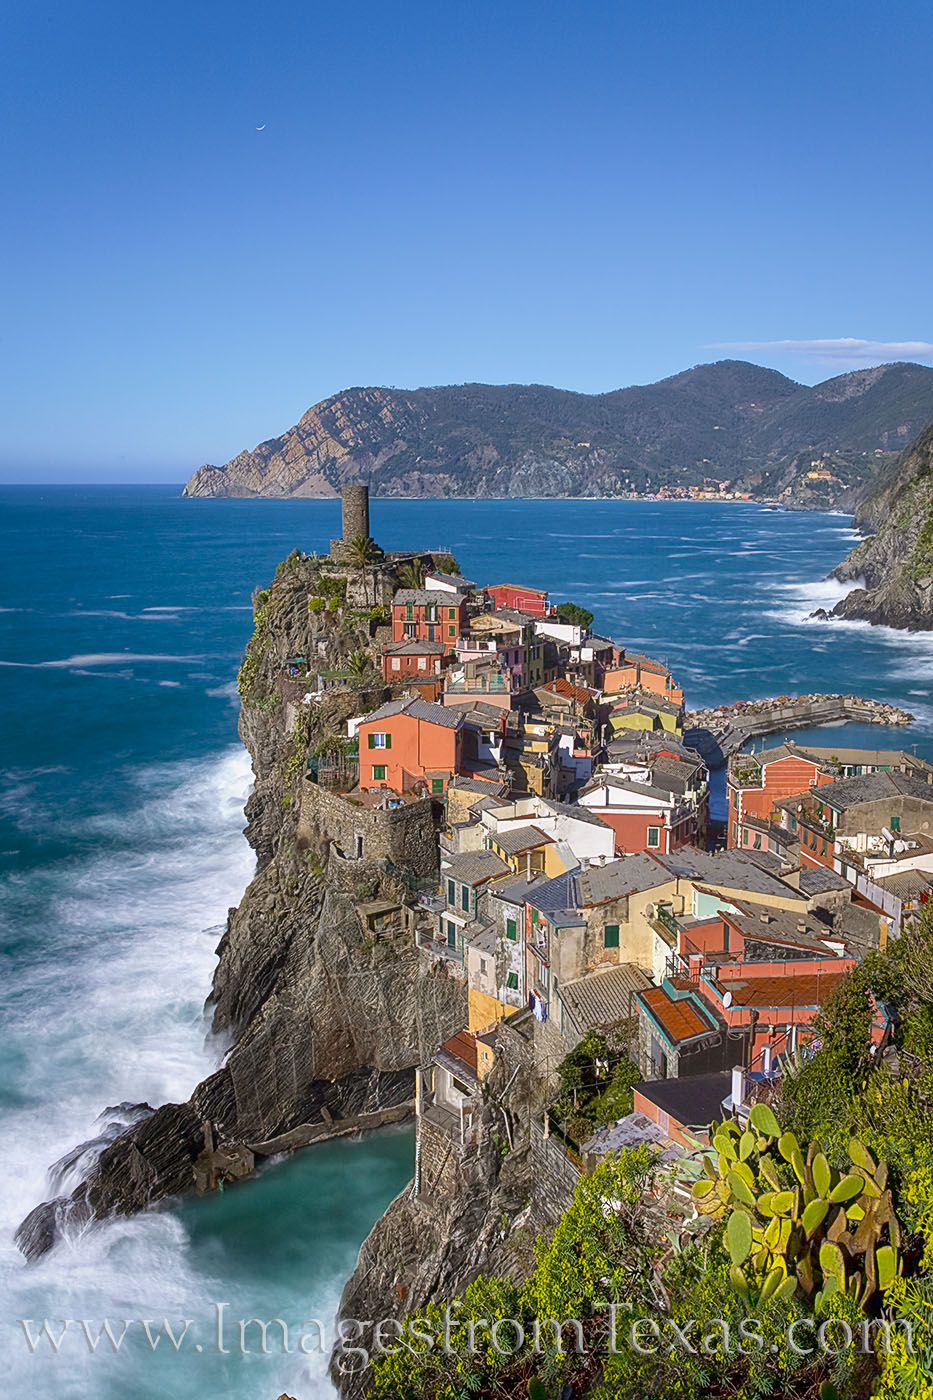 vernazza, cinque terre, italy, coast, italian riveria, ligurian sea, villages, sea, ocean, castle, 5 lands, travels, photo